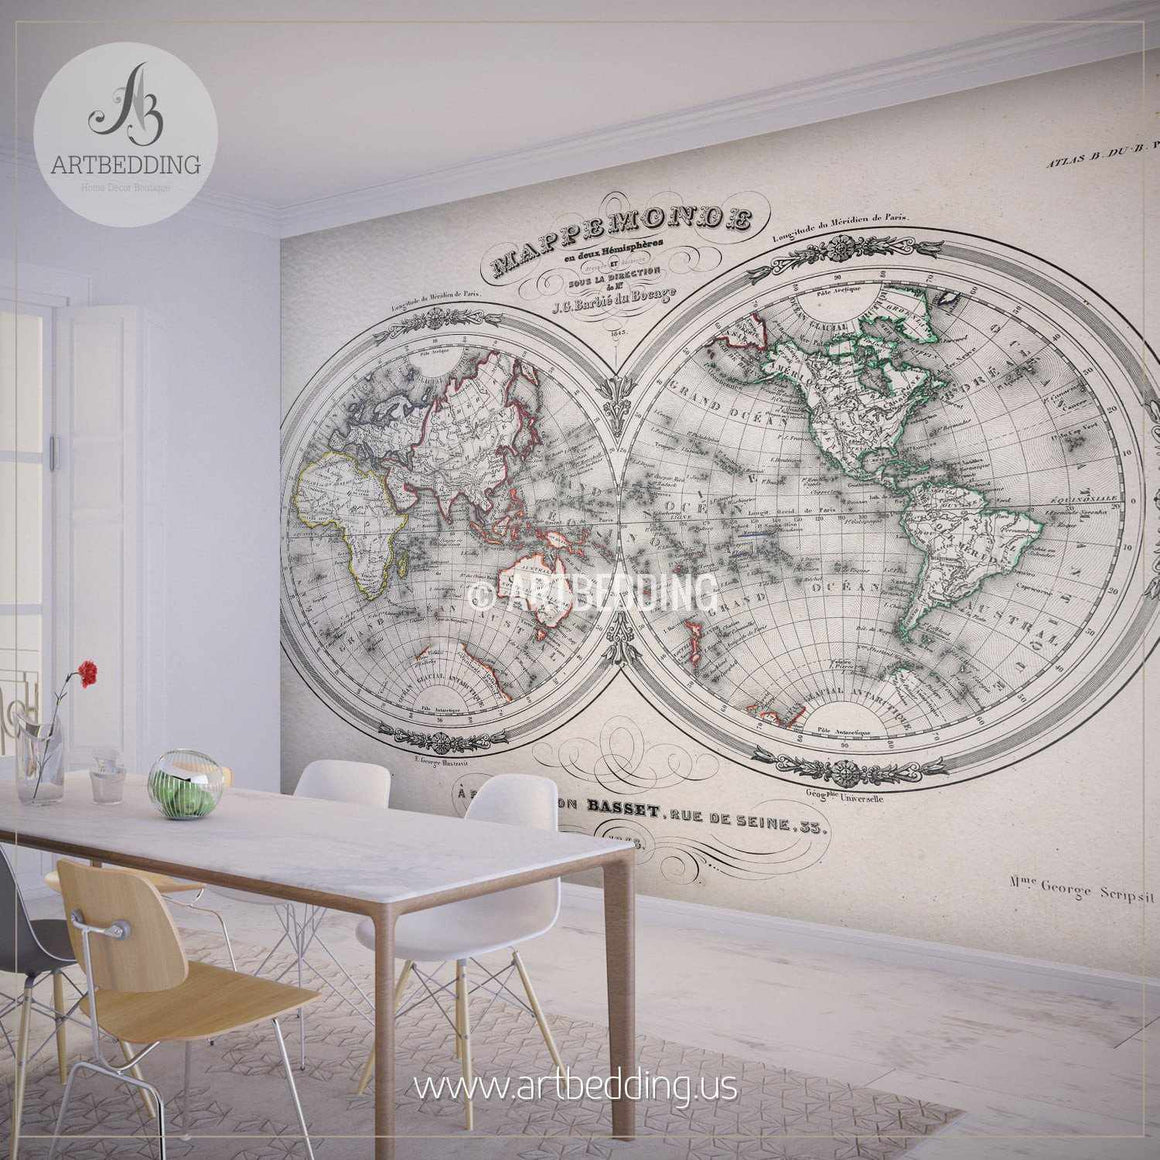 Antique World Map Hemisphere (1846) Wall Mural, Self Adhesive Peel & Stick Photo Mural, Atlas wall mural, mural home decor wall mural